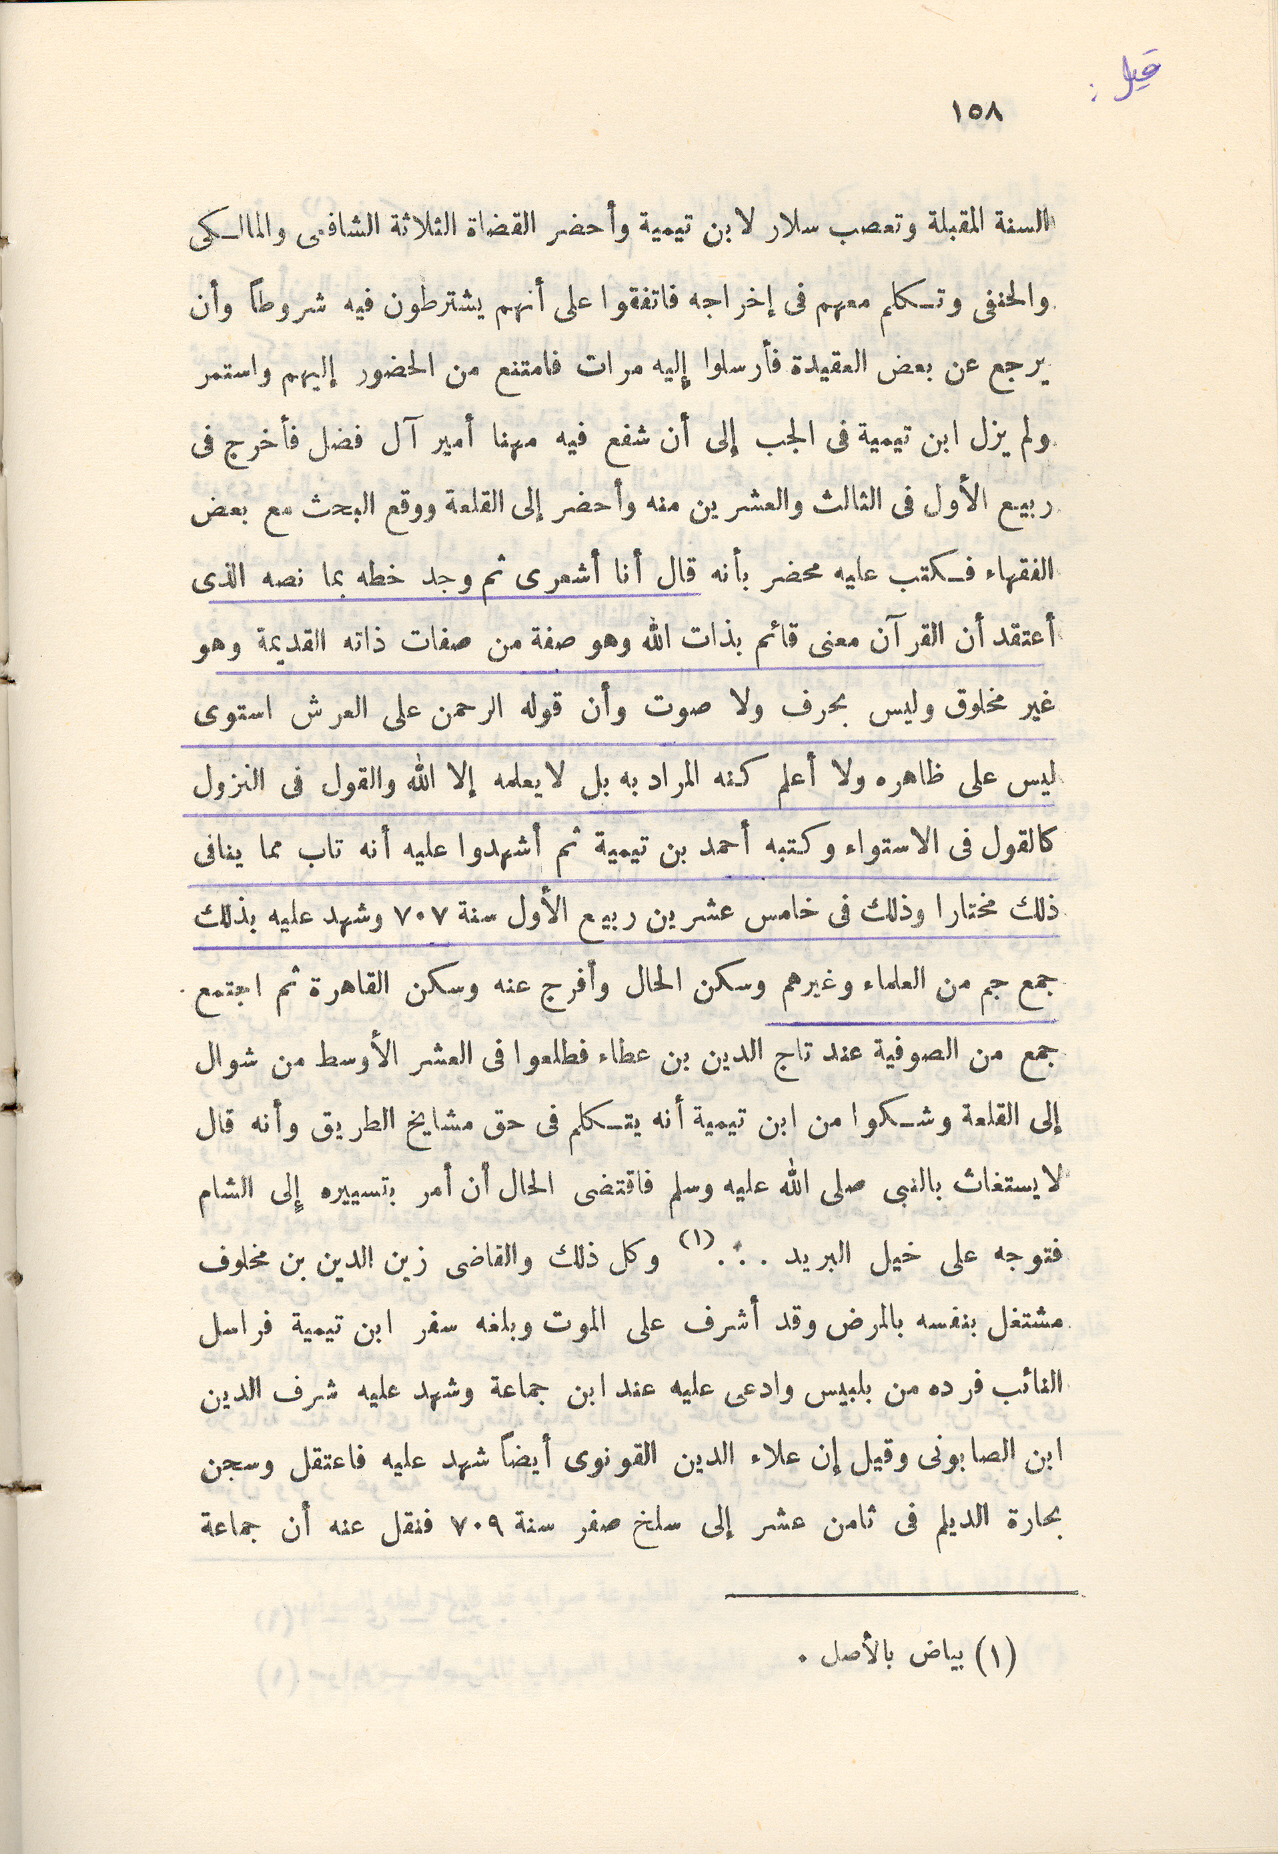 Description du repentir de Ibn Taymiyya